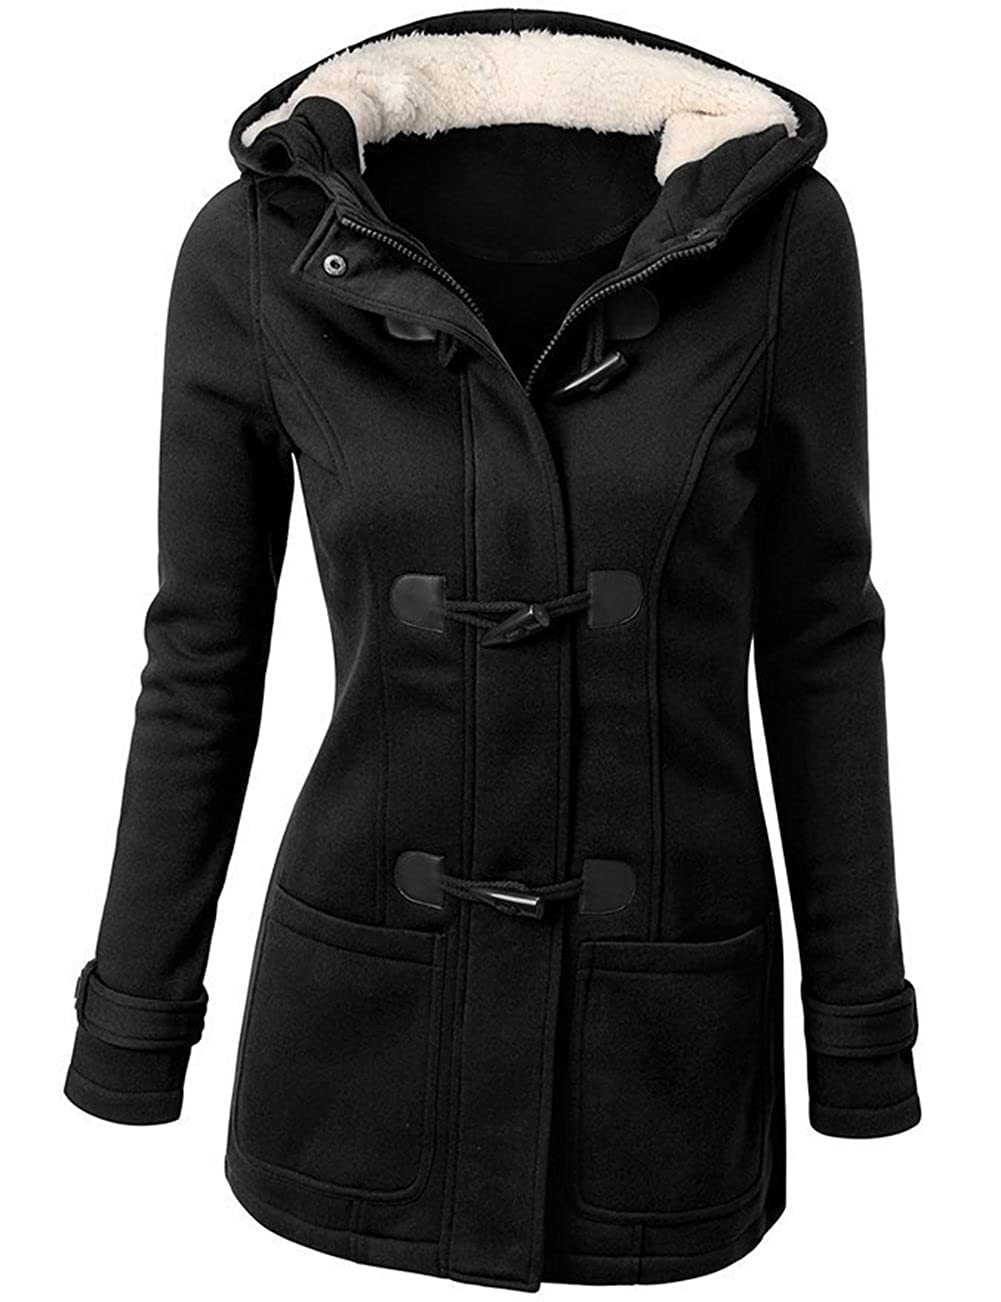 FANTIGO Womens Fashion Wool Blended Classic Hooded Pea Coat Jacket